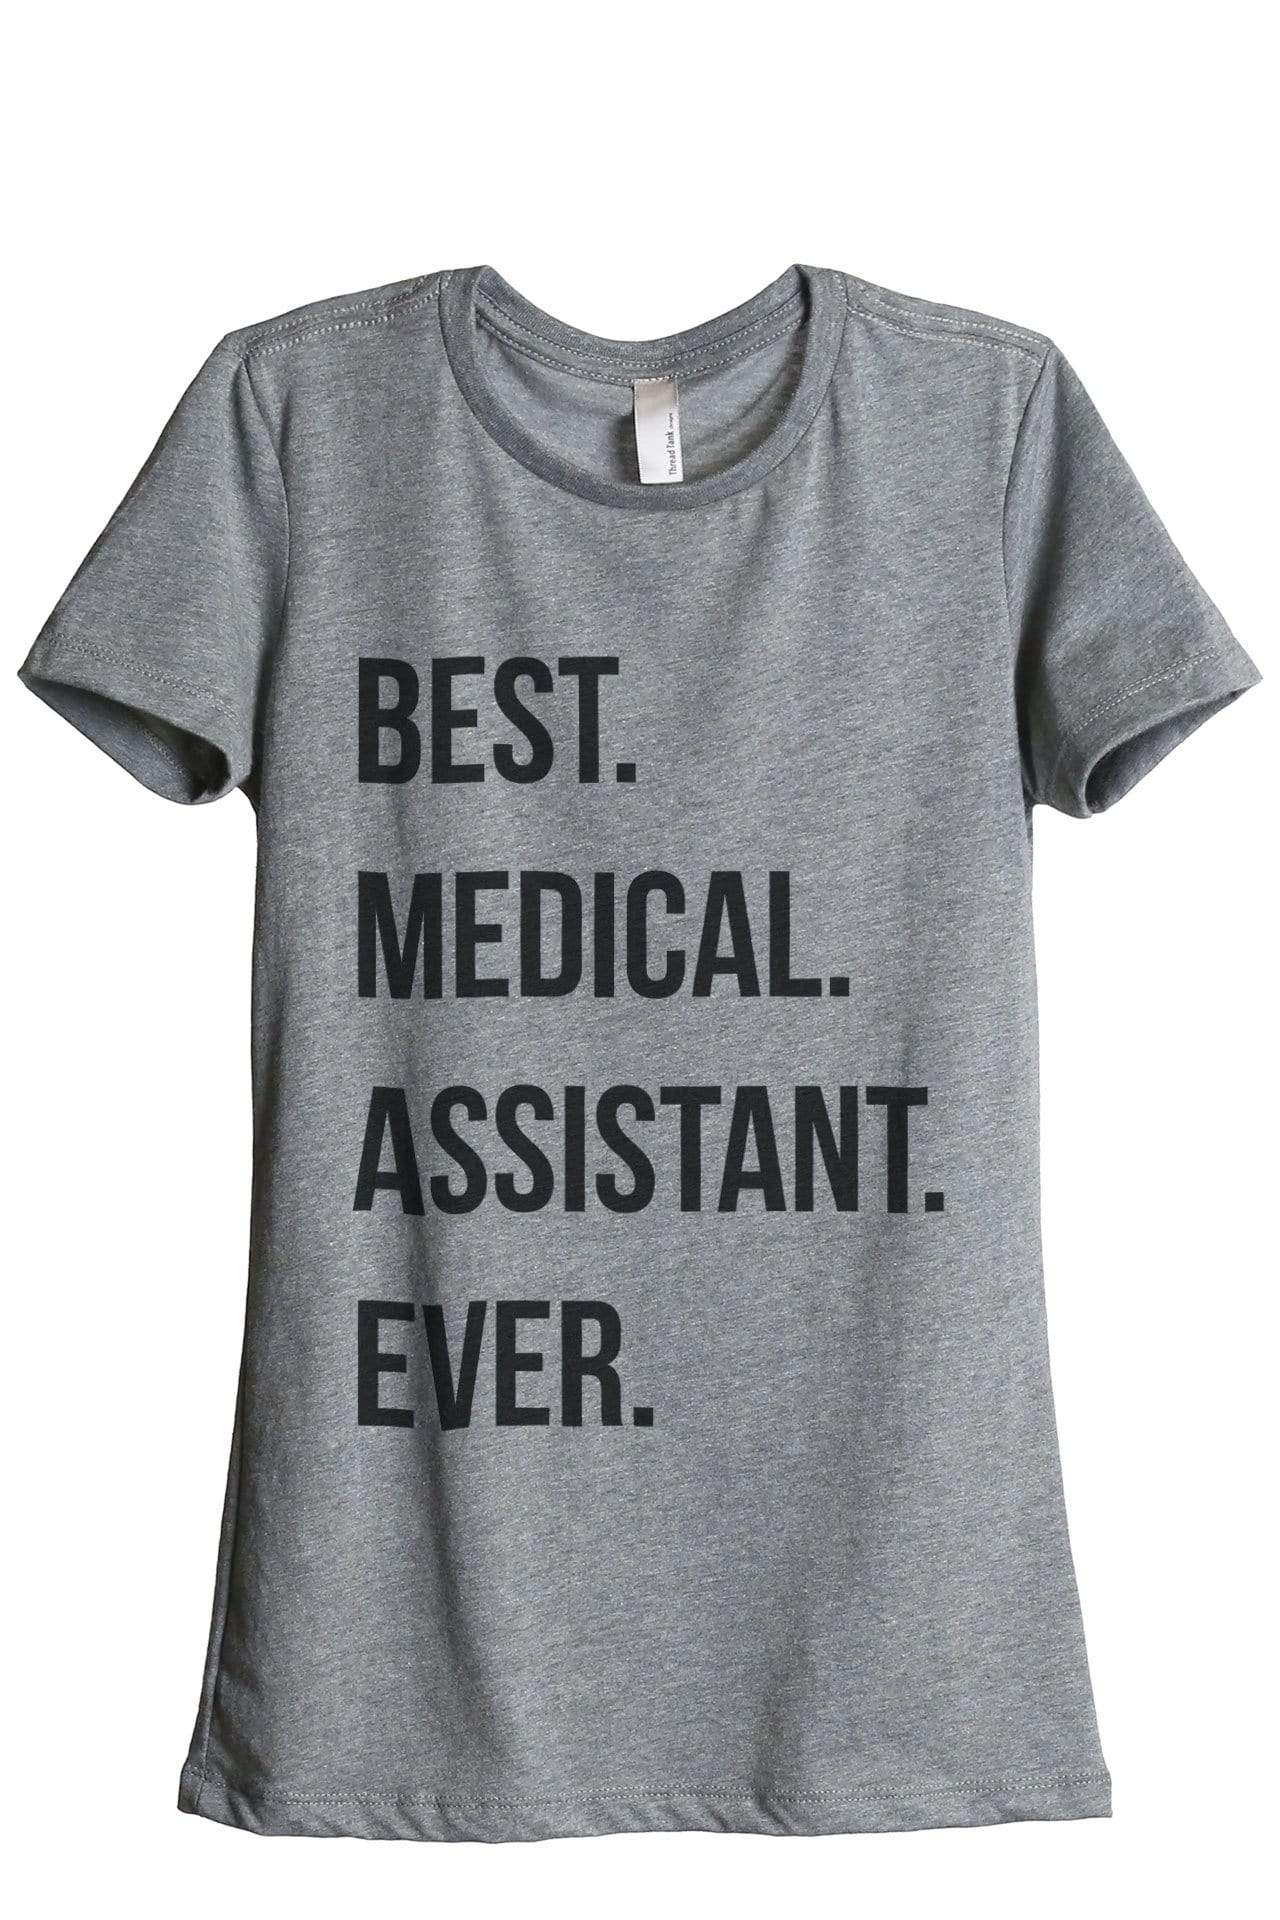 Best Medical Assistant Ever - Thread Tank | Stories You Can Wear | T-Shirts, Tank Tops and Sweatshirts